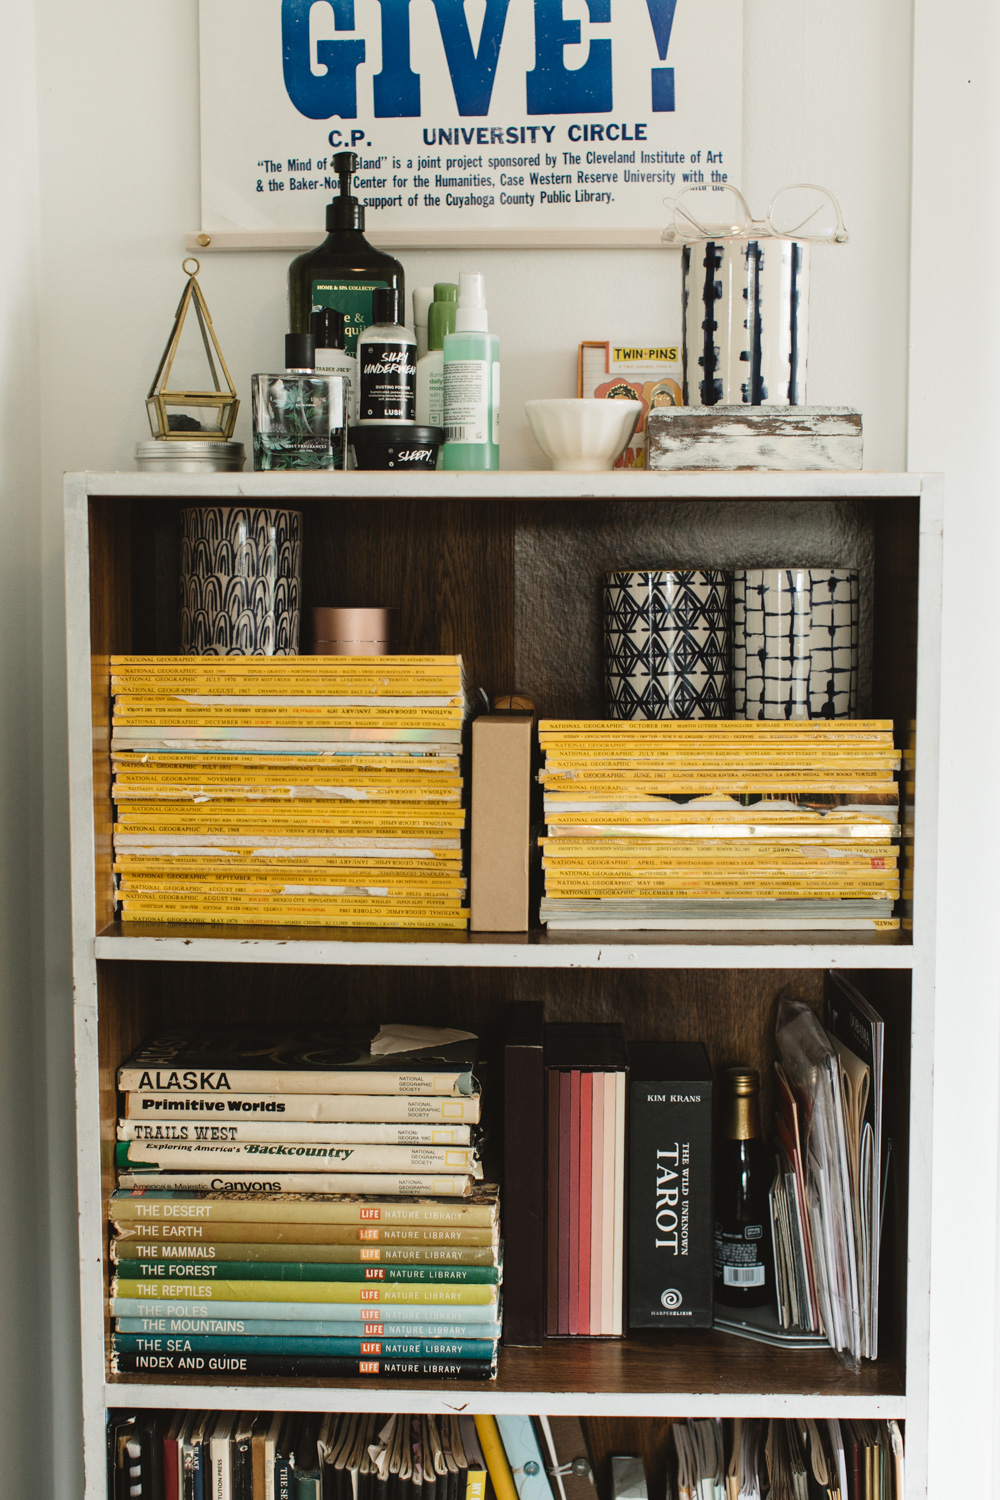 Bookshelf with old magazines and books